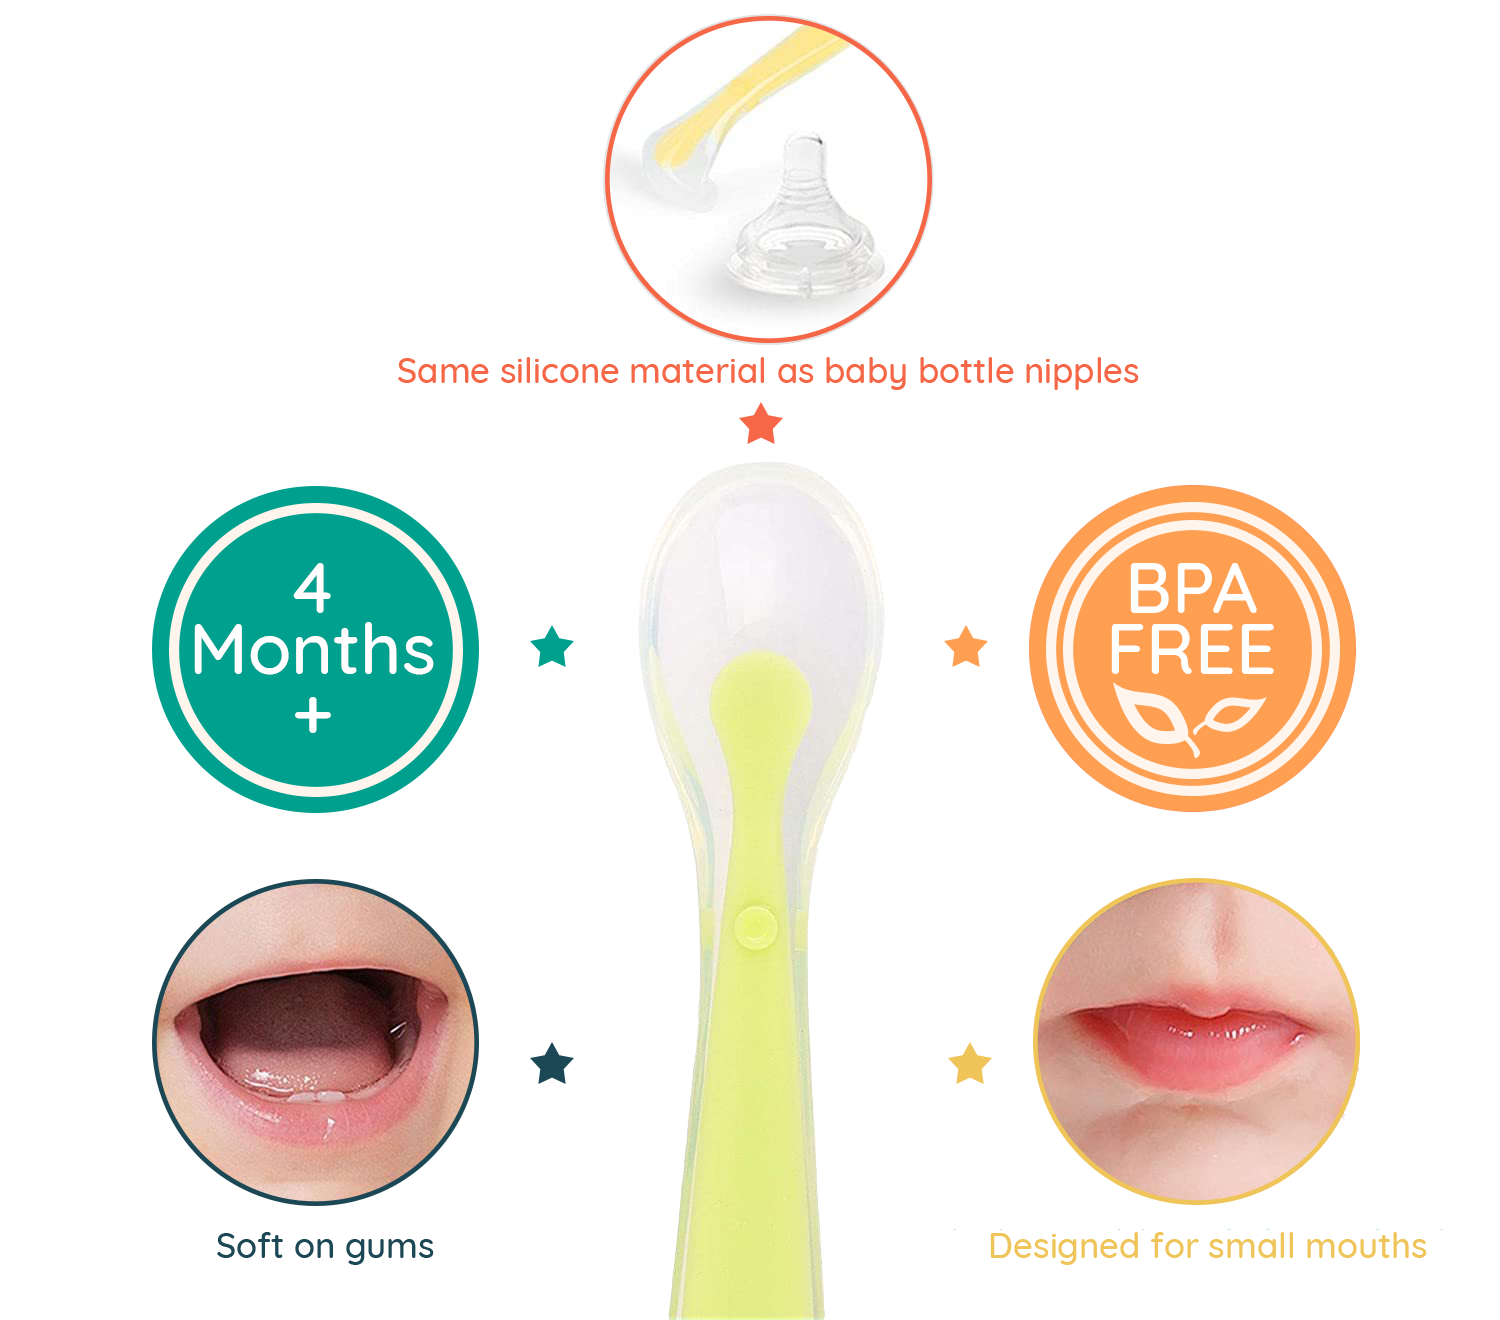 SuperTots soft silicone spoon with various features and benefits including it being soft on gums, designed for small mouths and BPA free